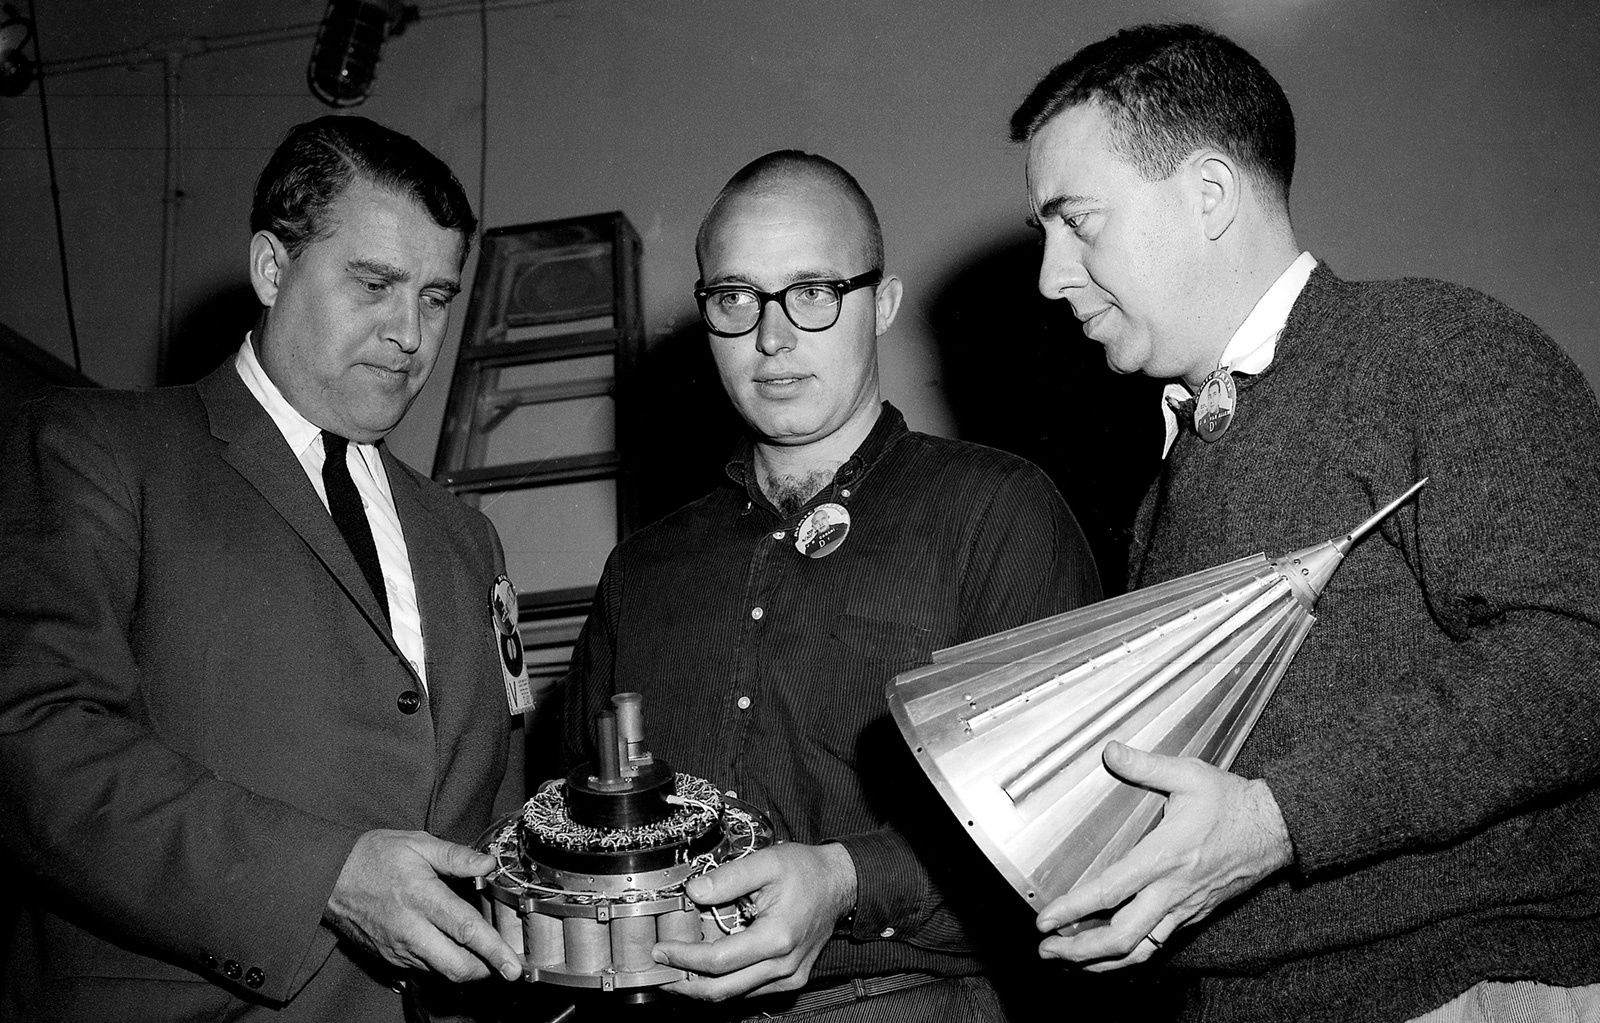 Black and white image of three men holding a small spacecraft.